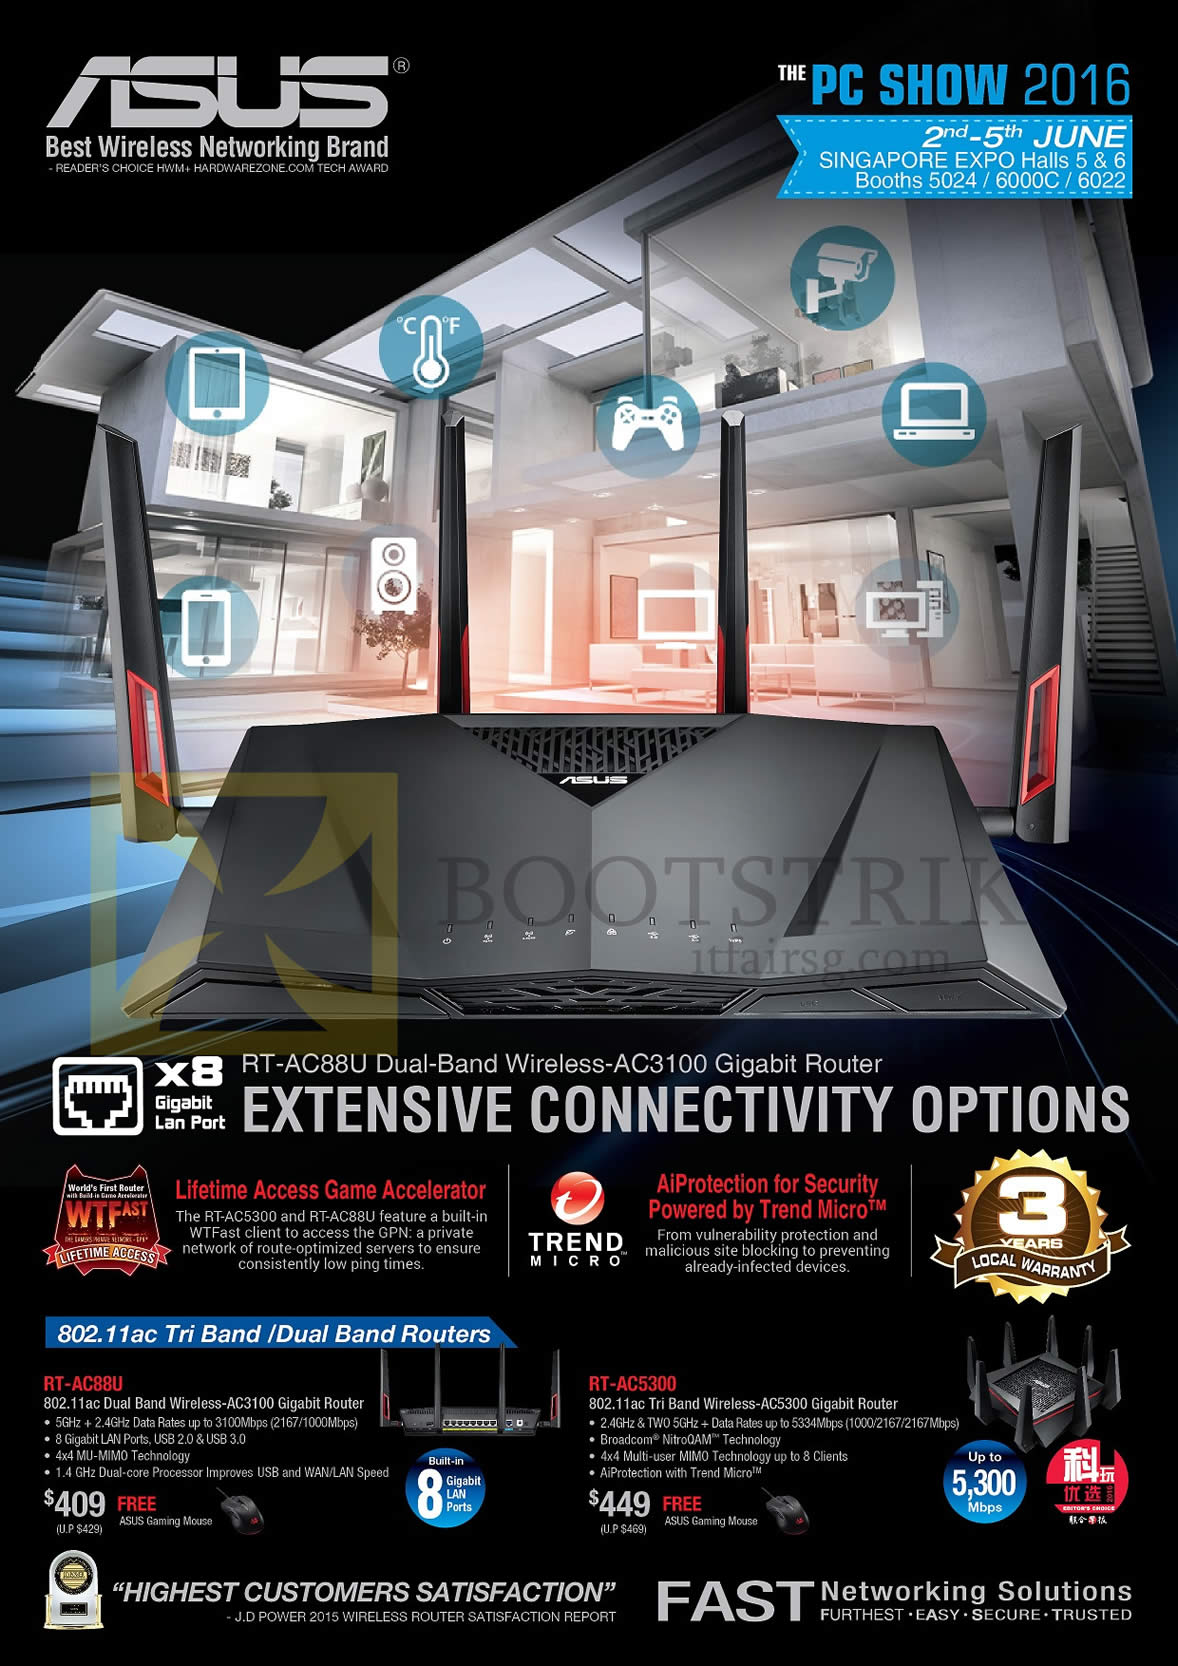 PC SHOW 2016 price list image brochure of ASUS Networking Wireless Routers RT-AC88U, RT-AC5300